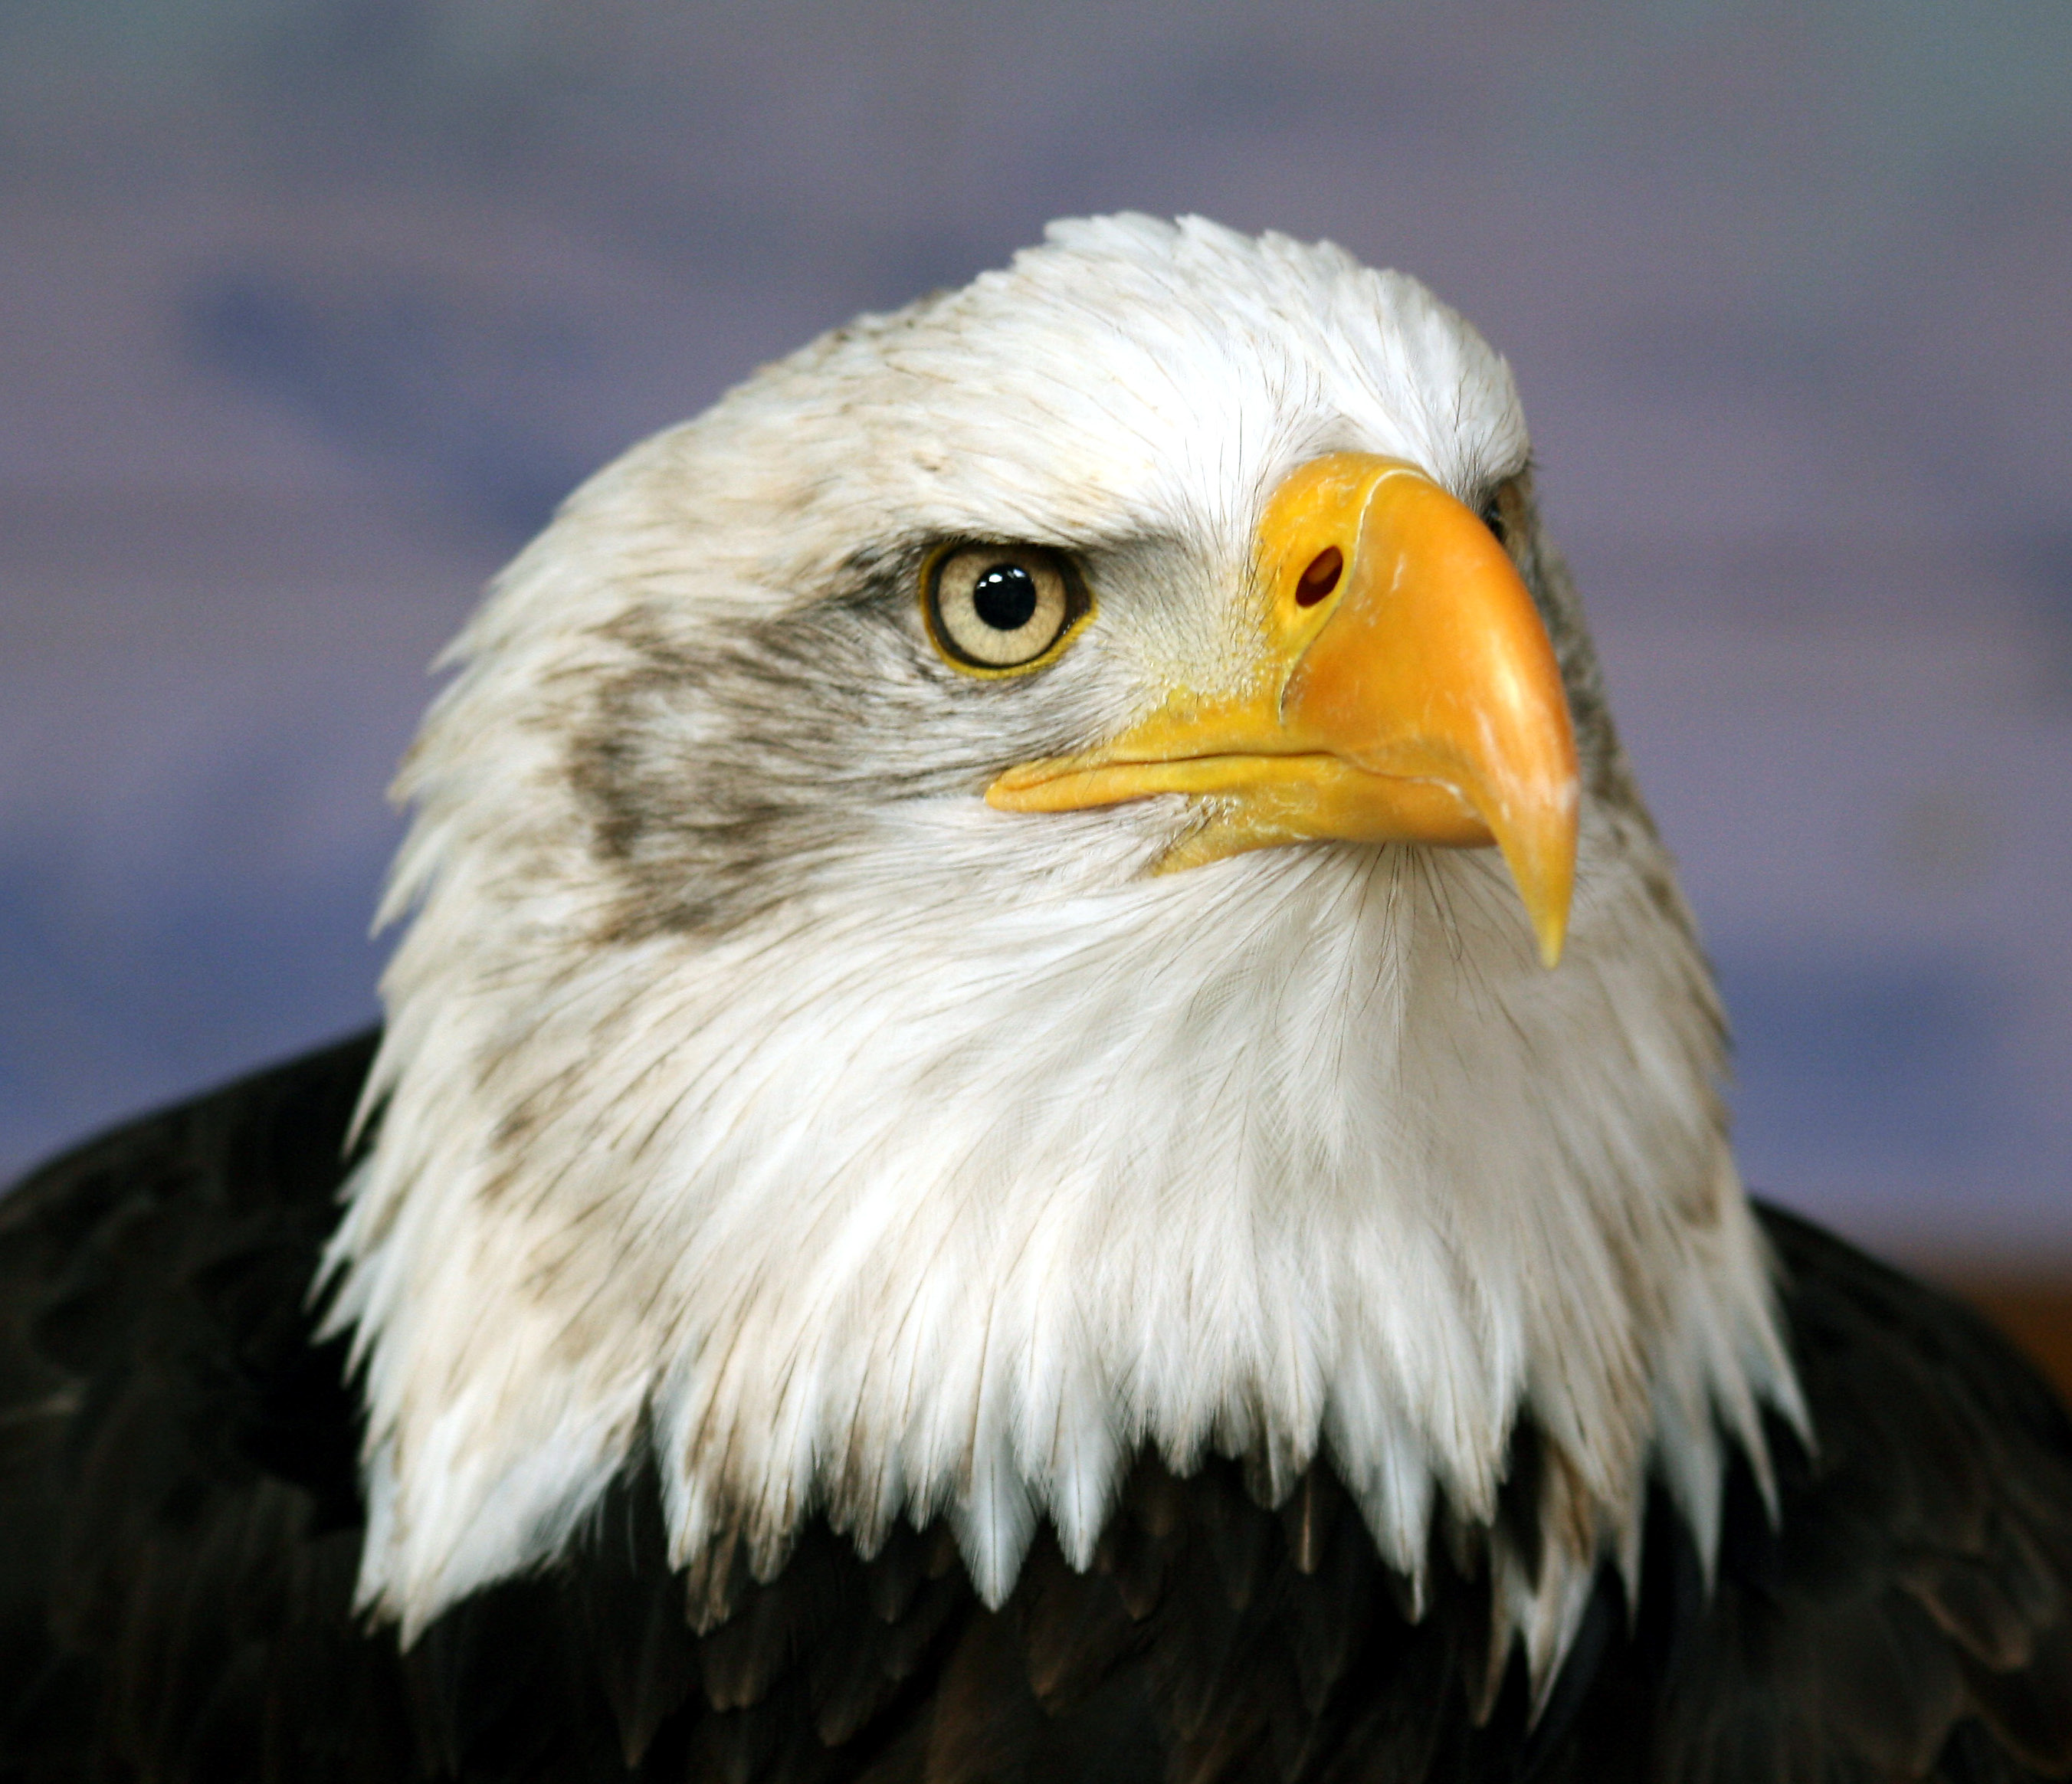 Bald eagle head image